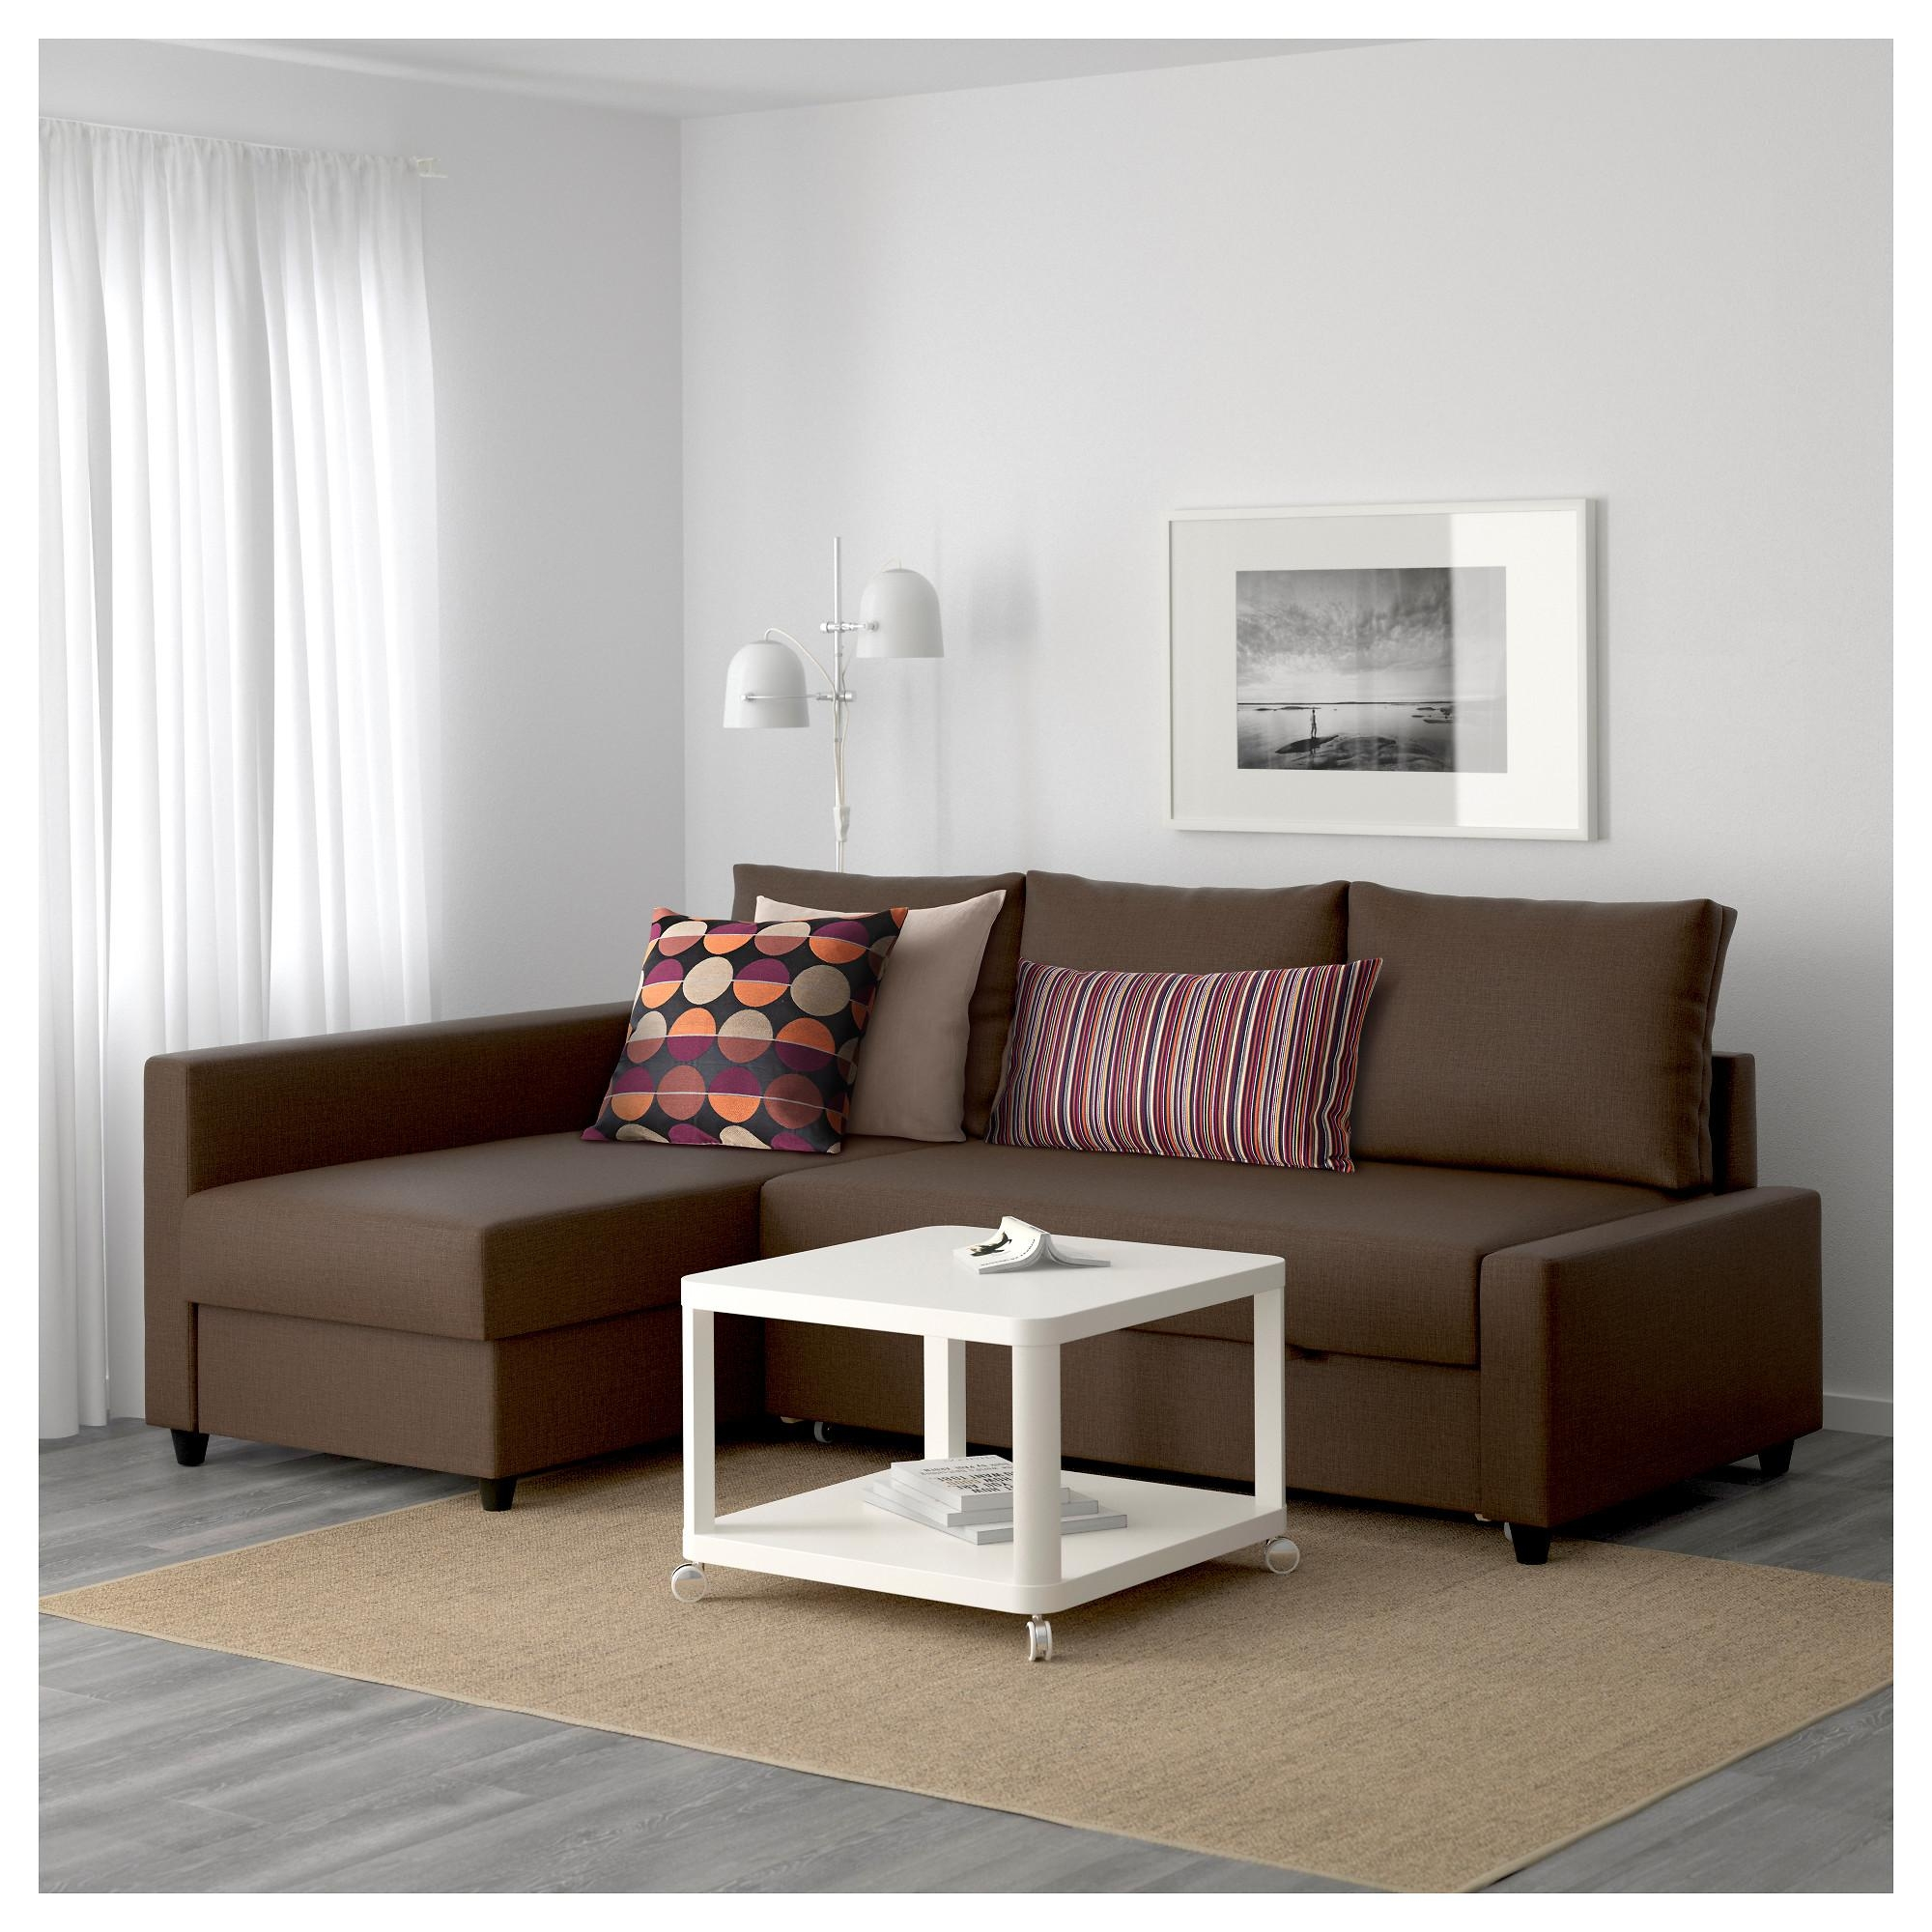 Friheten Corner Sofa Bed With Storage Skiftebo Brown – Ikea With Regard To Storage Sofa Ikea (View 11 of 20)